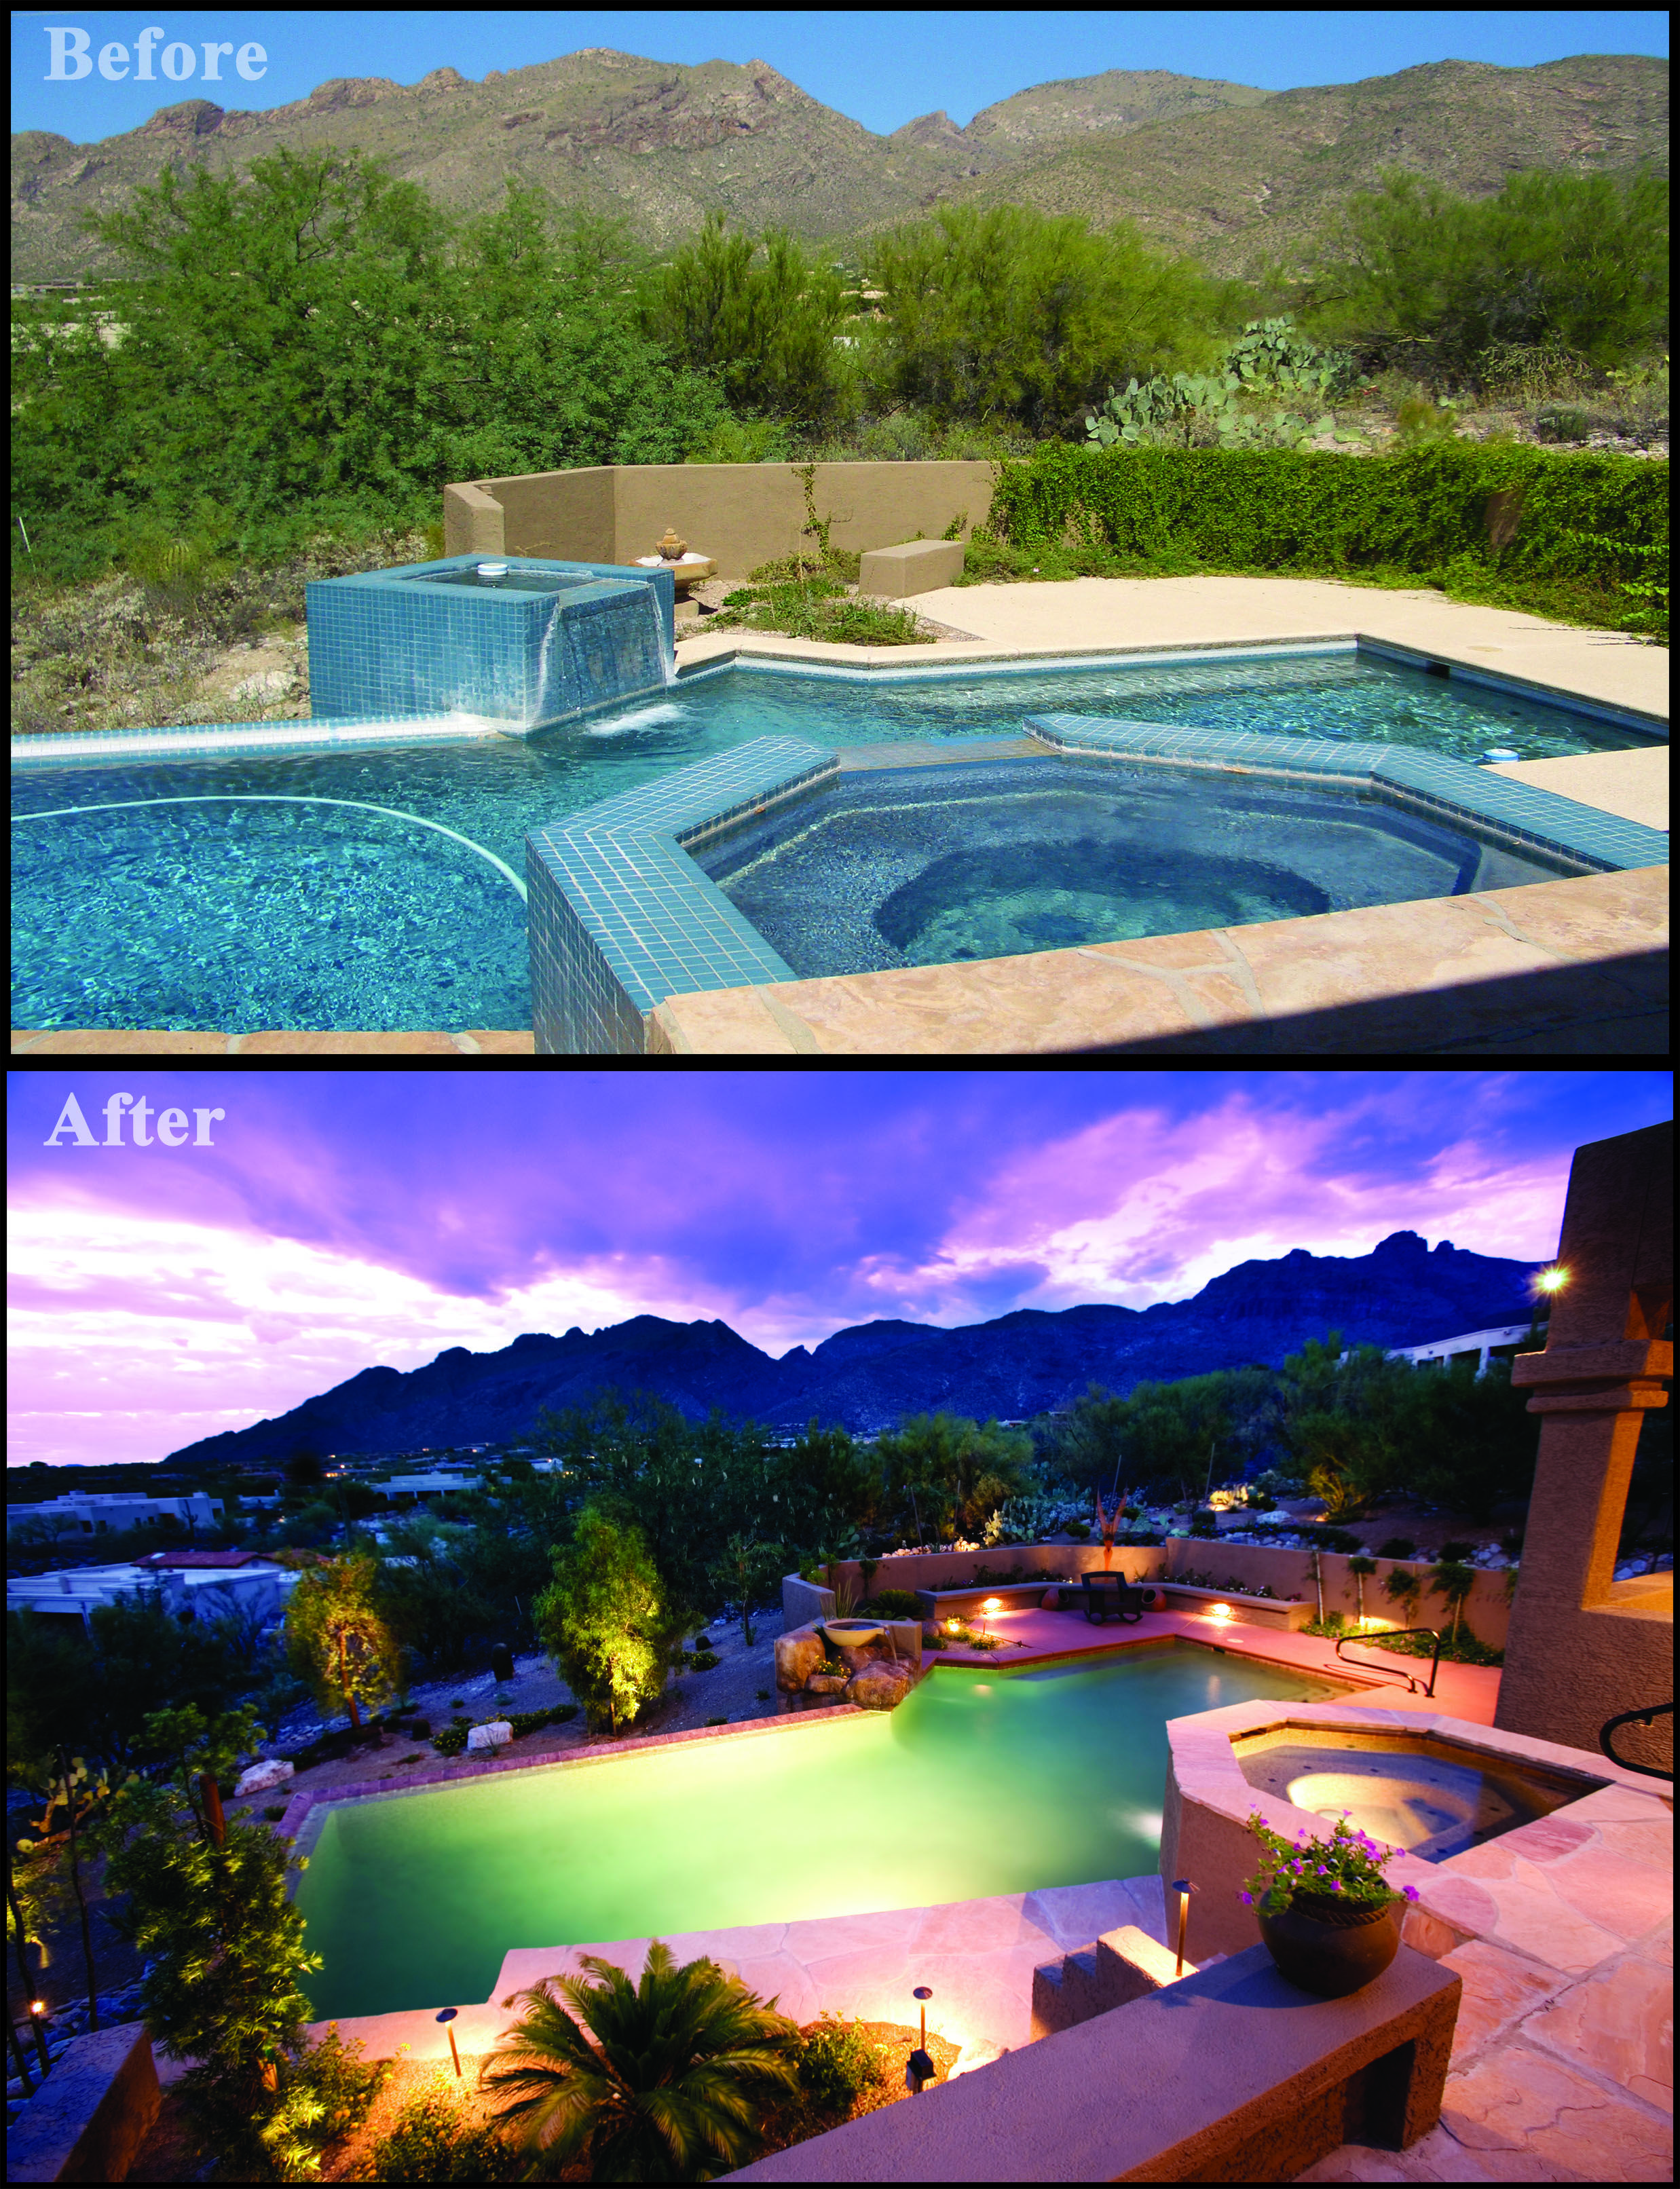 Before And After Pool And Spa Renovation By Patio Pools And Spas.  Www.PatioPoolsAZ